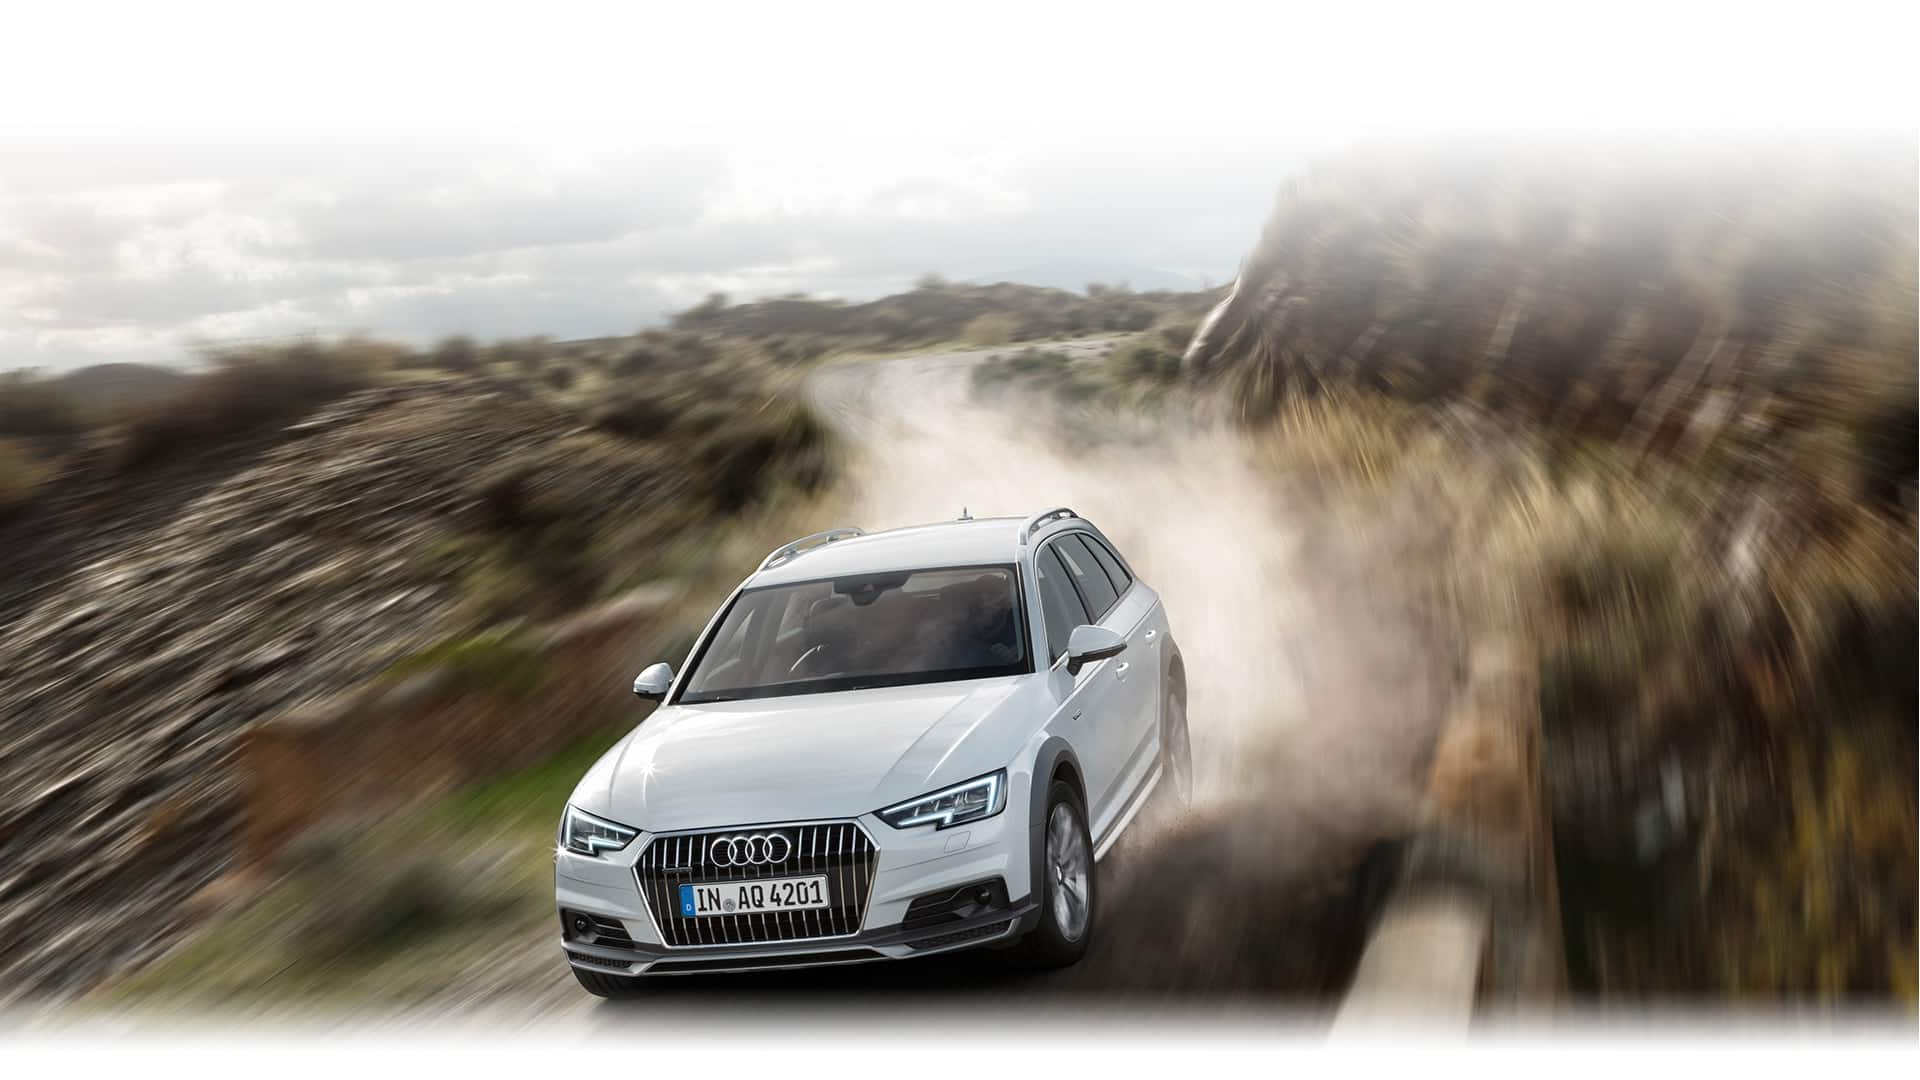 The Audi A4 allroad